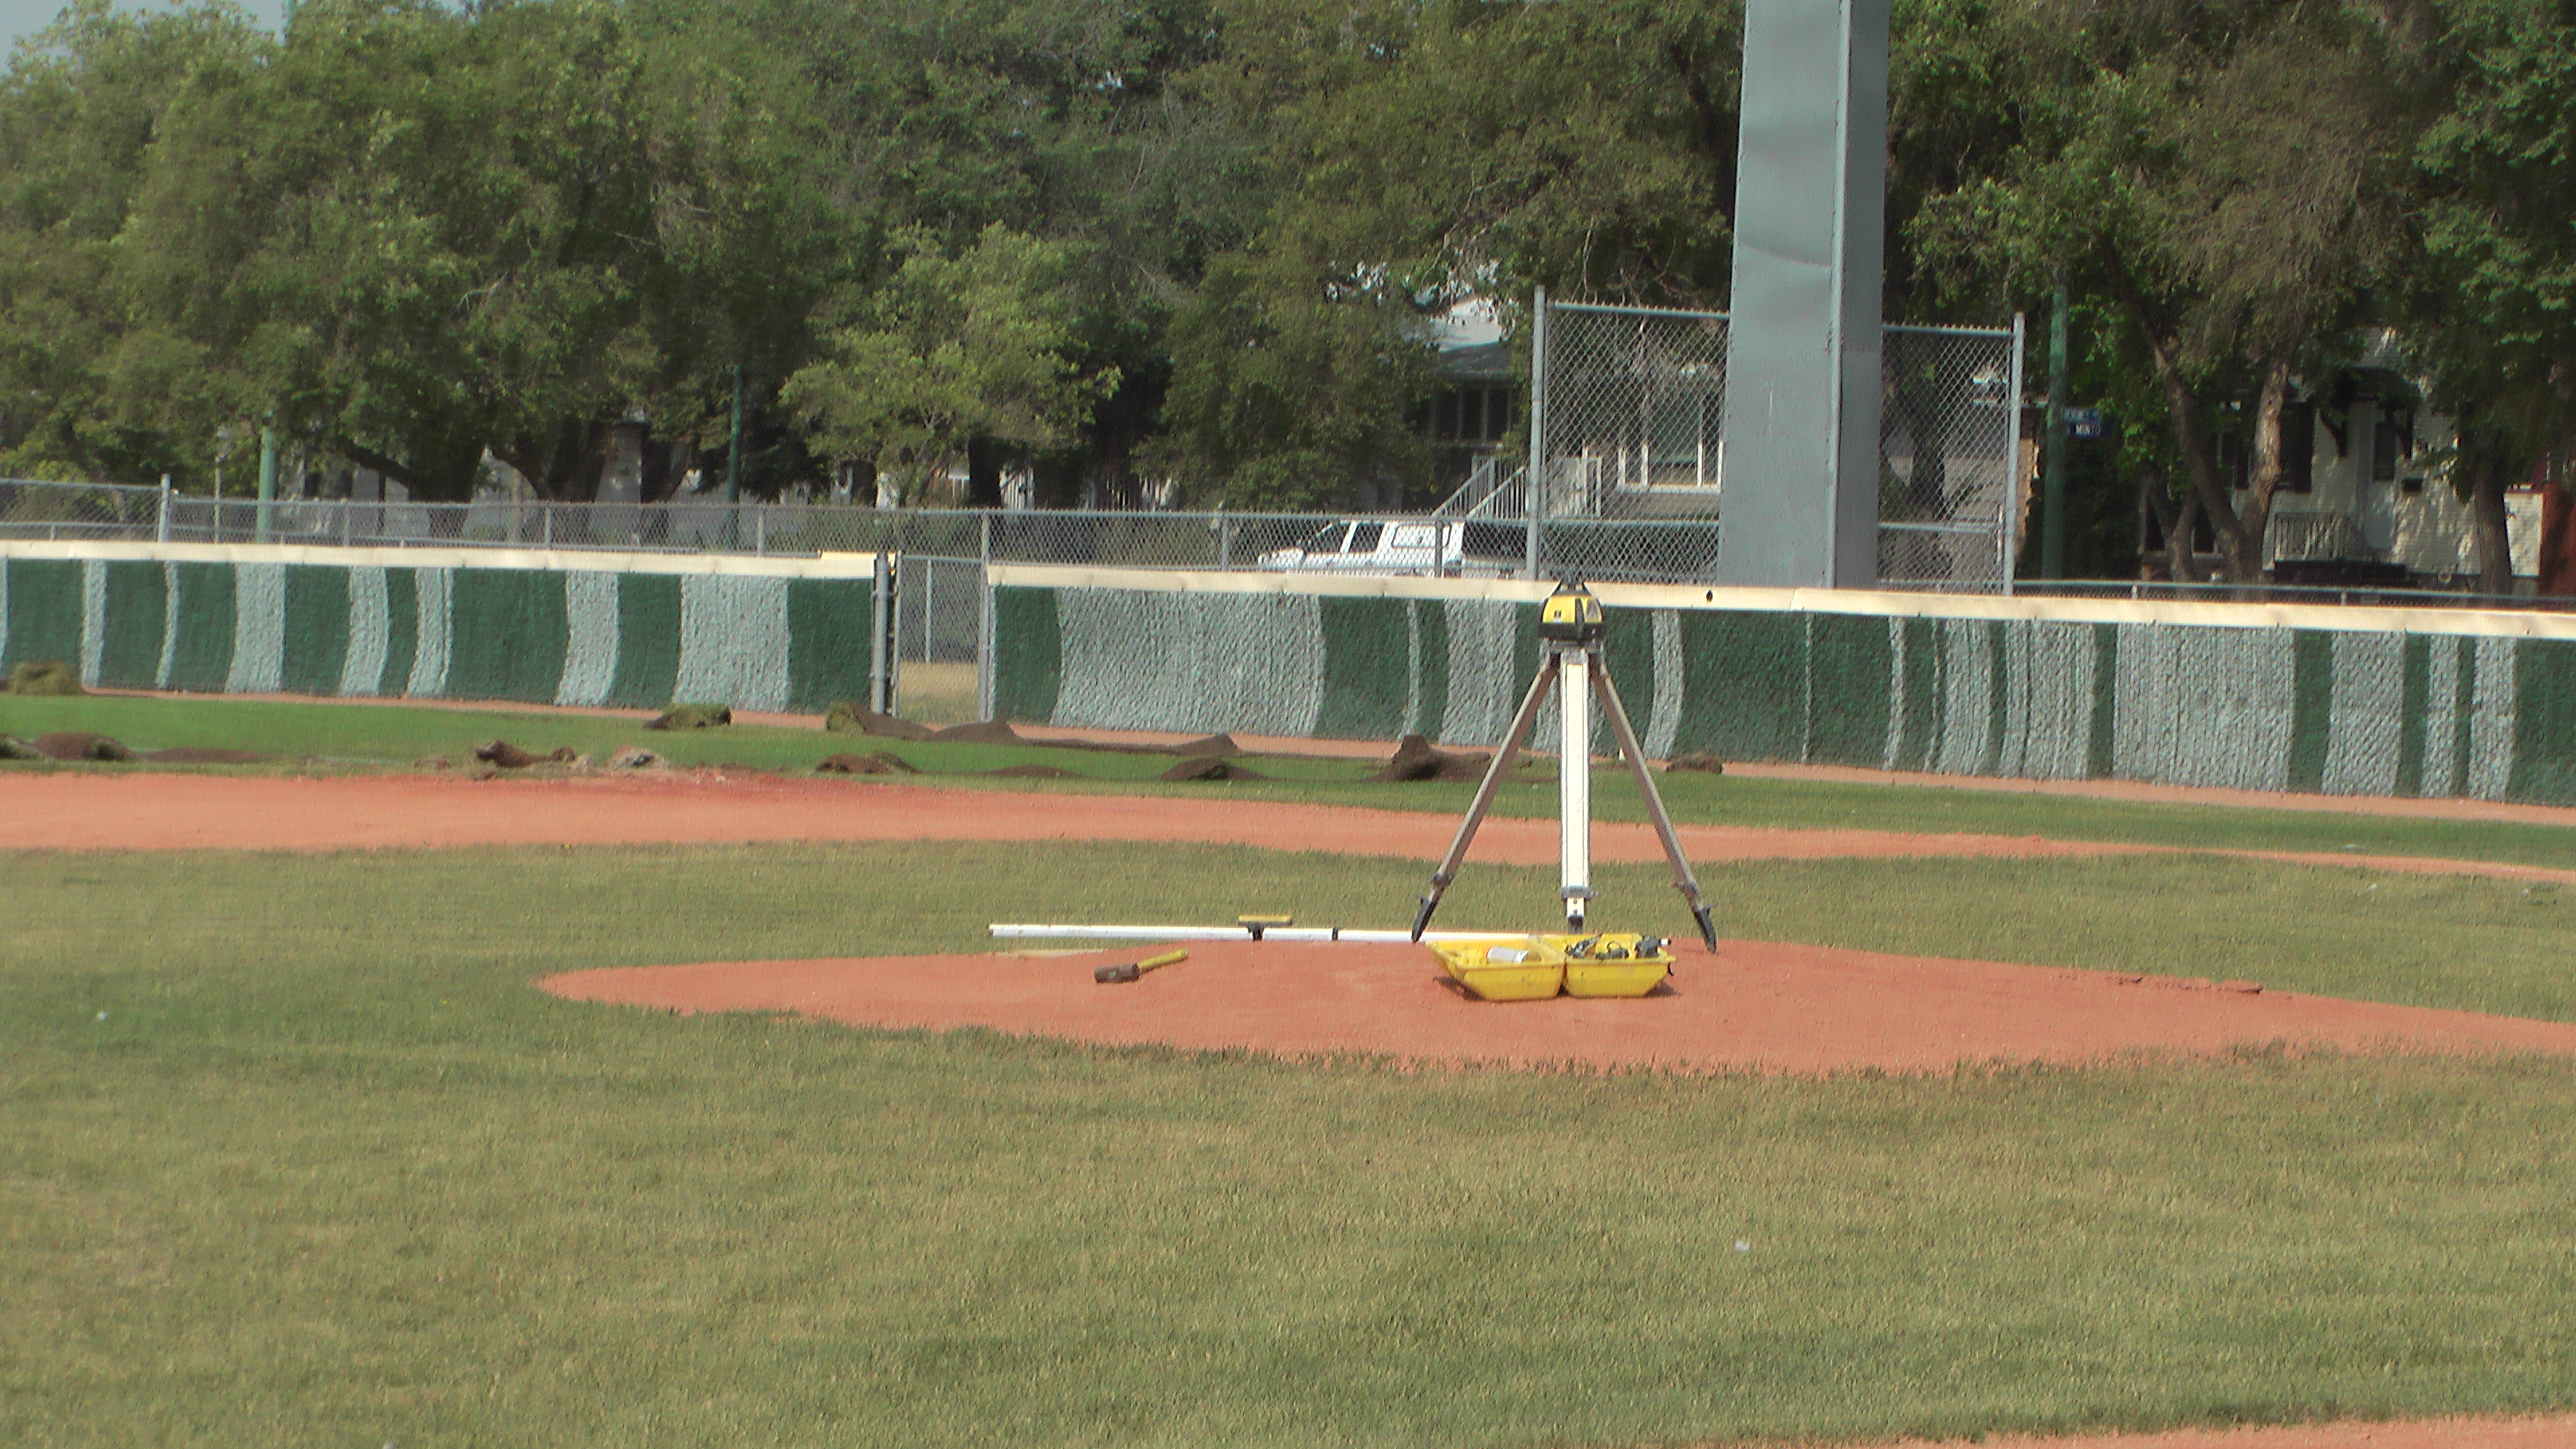 Regina Optimist Park Field Renovations Have Started! Aug 17 2018! Videos and Pics. Check Back for more pics and video to be added!  - Image 7